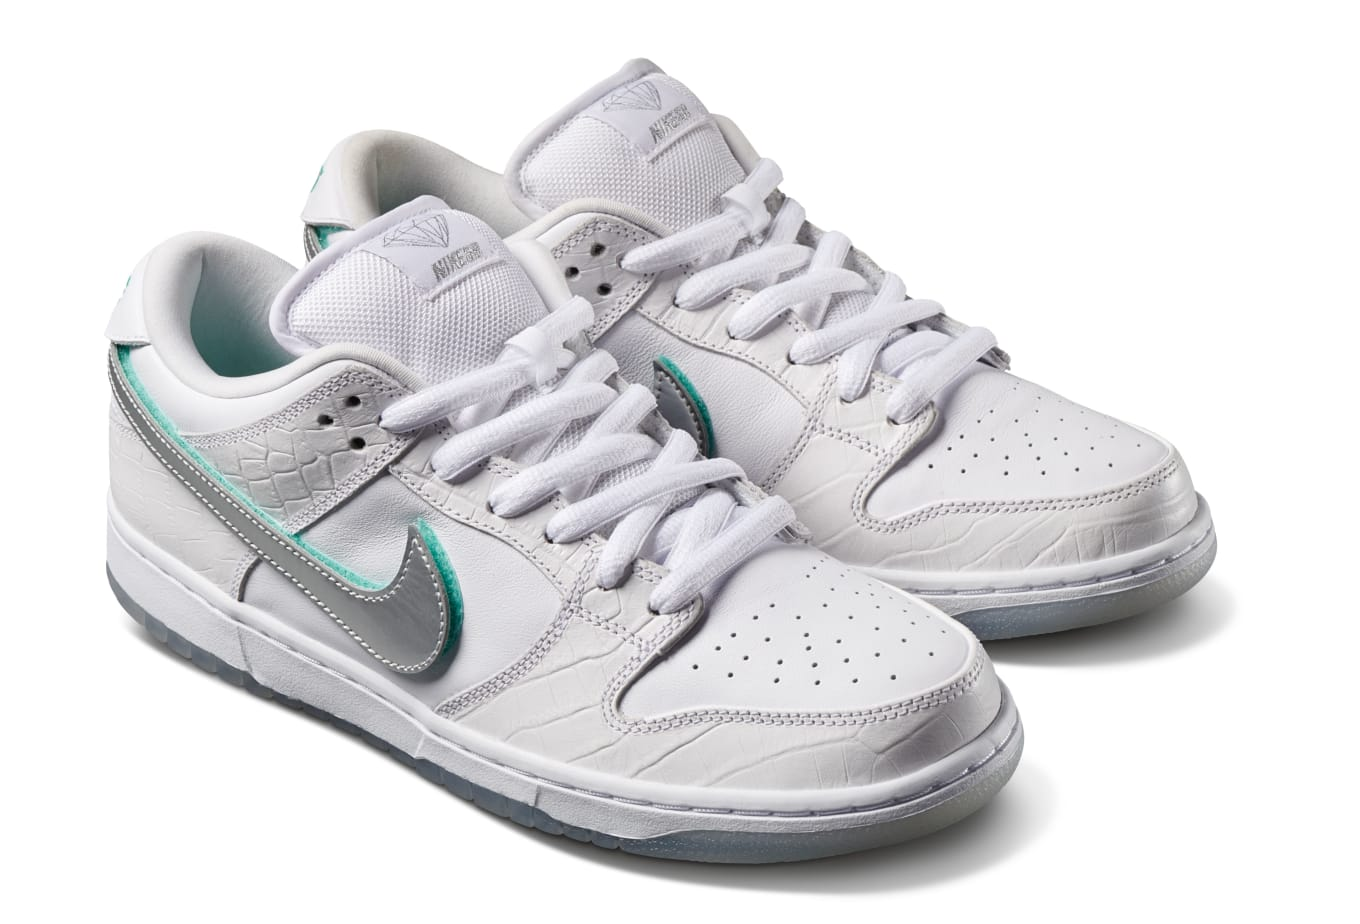 f7f2aea90e Diamond Supply Co. x Nike SB Dunk Low 'Tiffany' 2018 Release Date ...